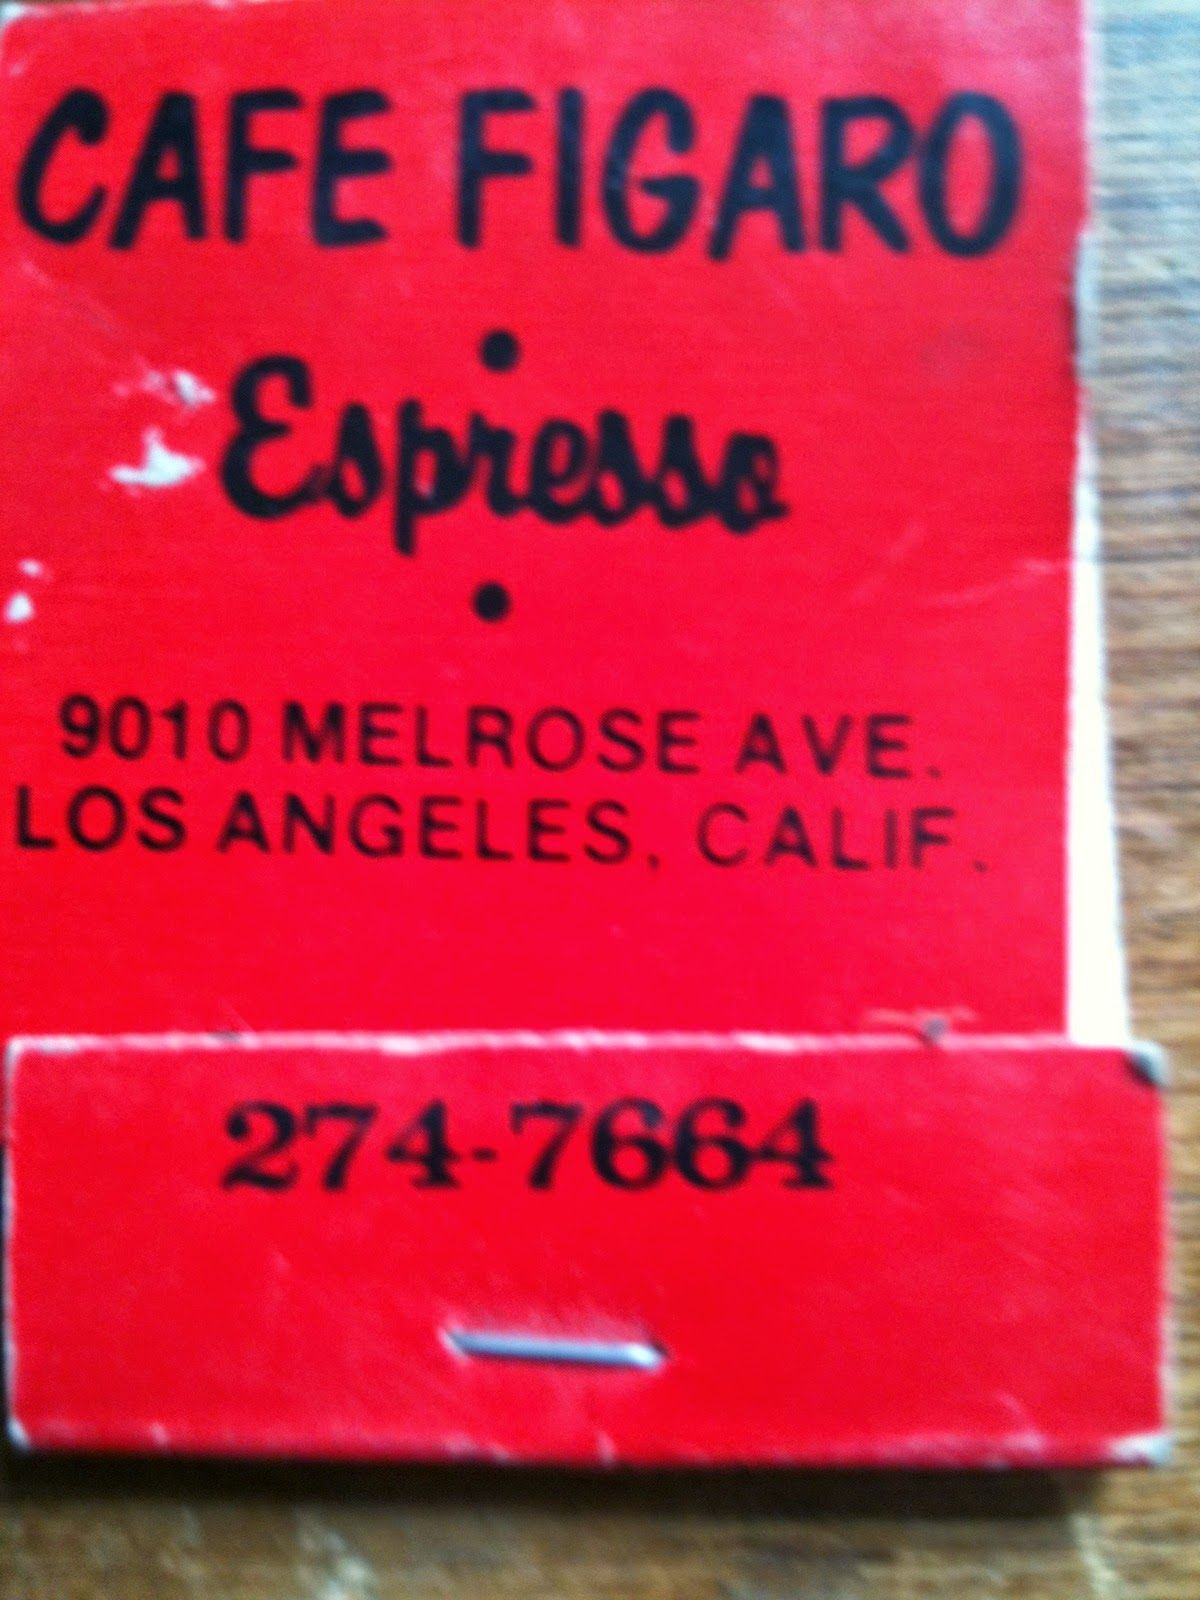 I Loved Cafe Figaro On Melrose Not To Be Confused With Figaro Bistrot Sadly Cafe Figaro Closed In 1997 I Had Several Dates The Love Cafe Cafe Matchbook